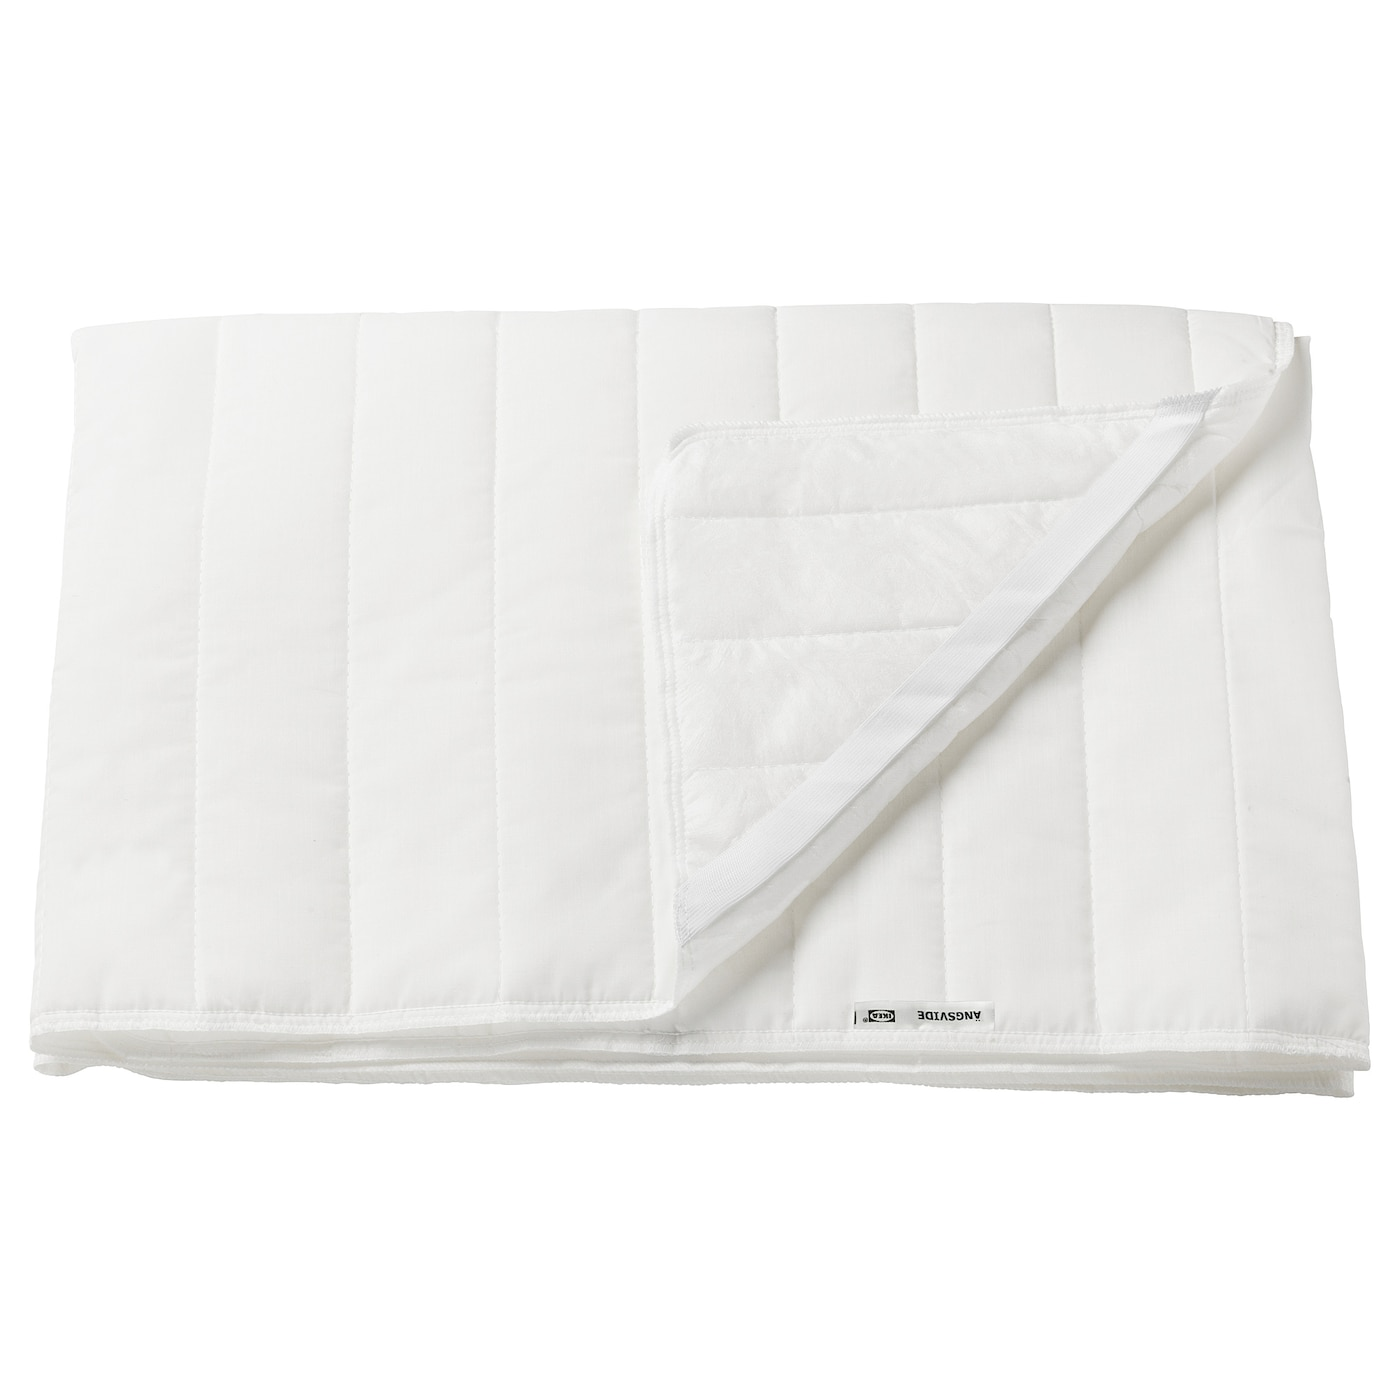 IKEA ANGSVIDE Cotton Blend Mattress Cover Protector Topper